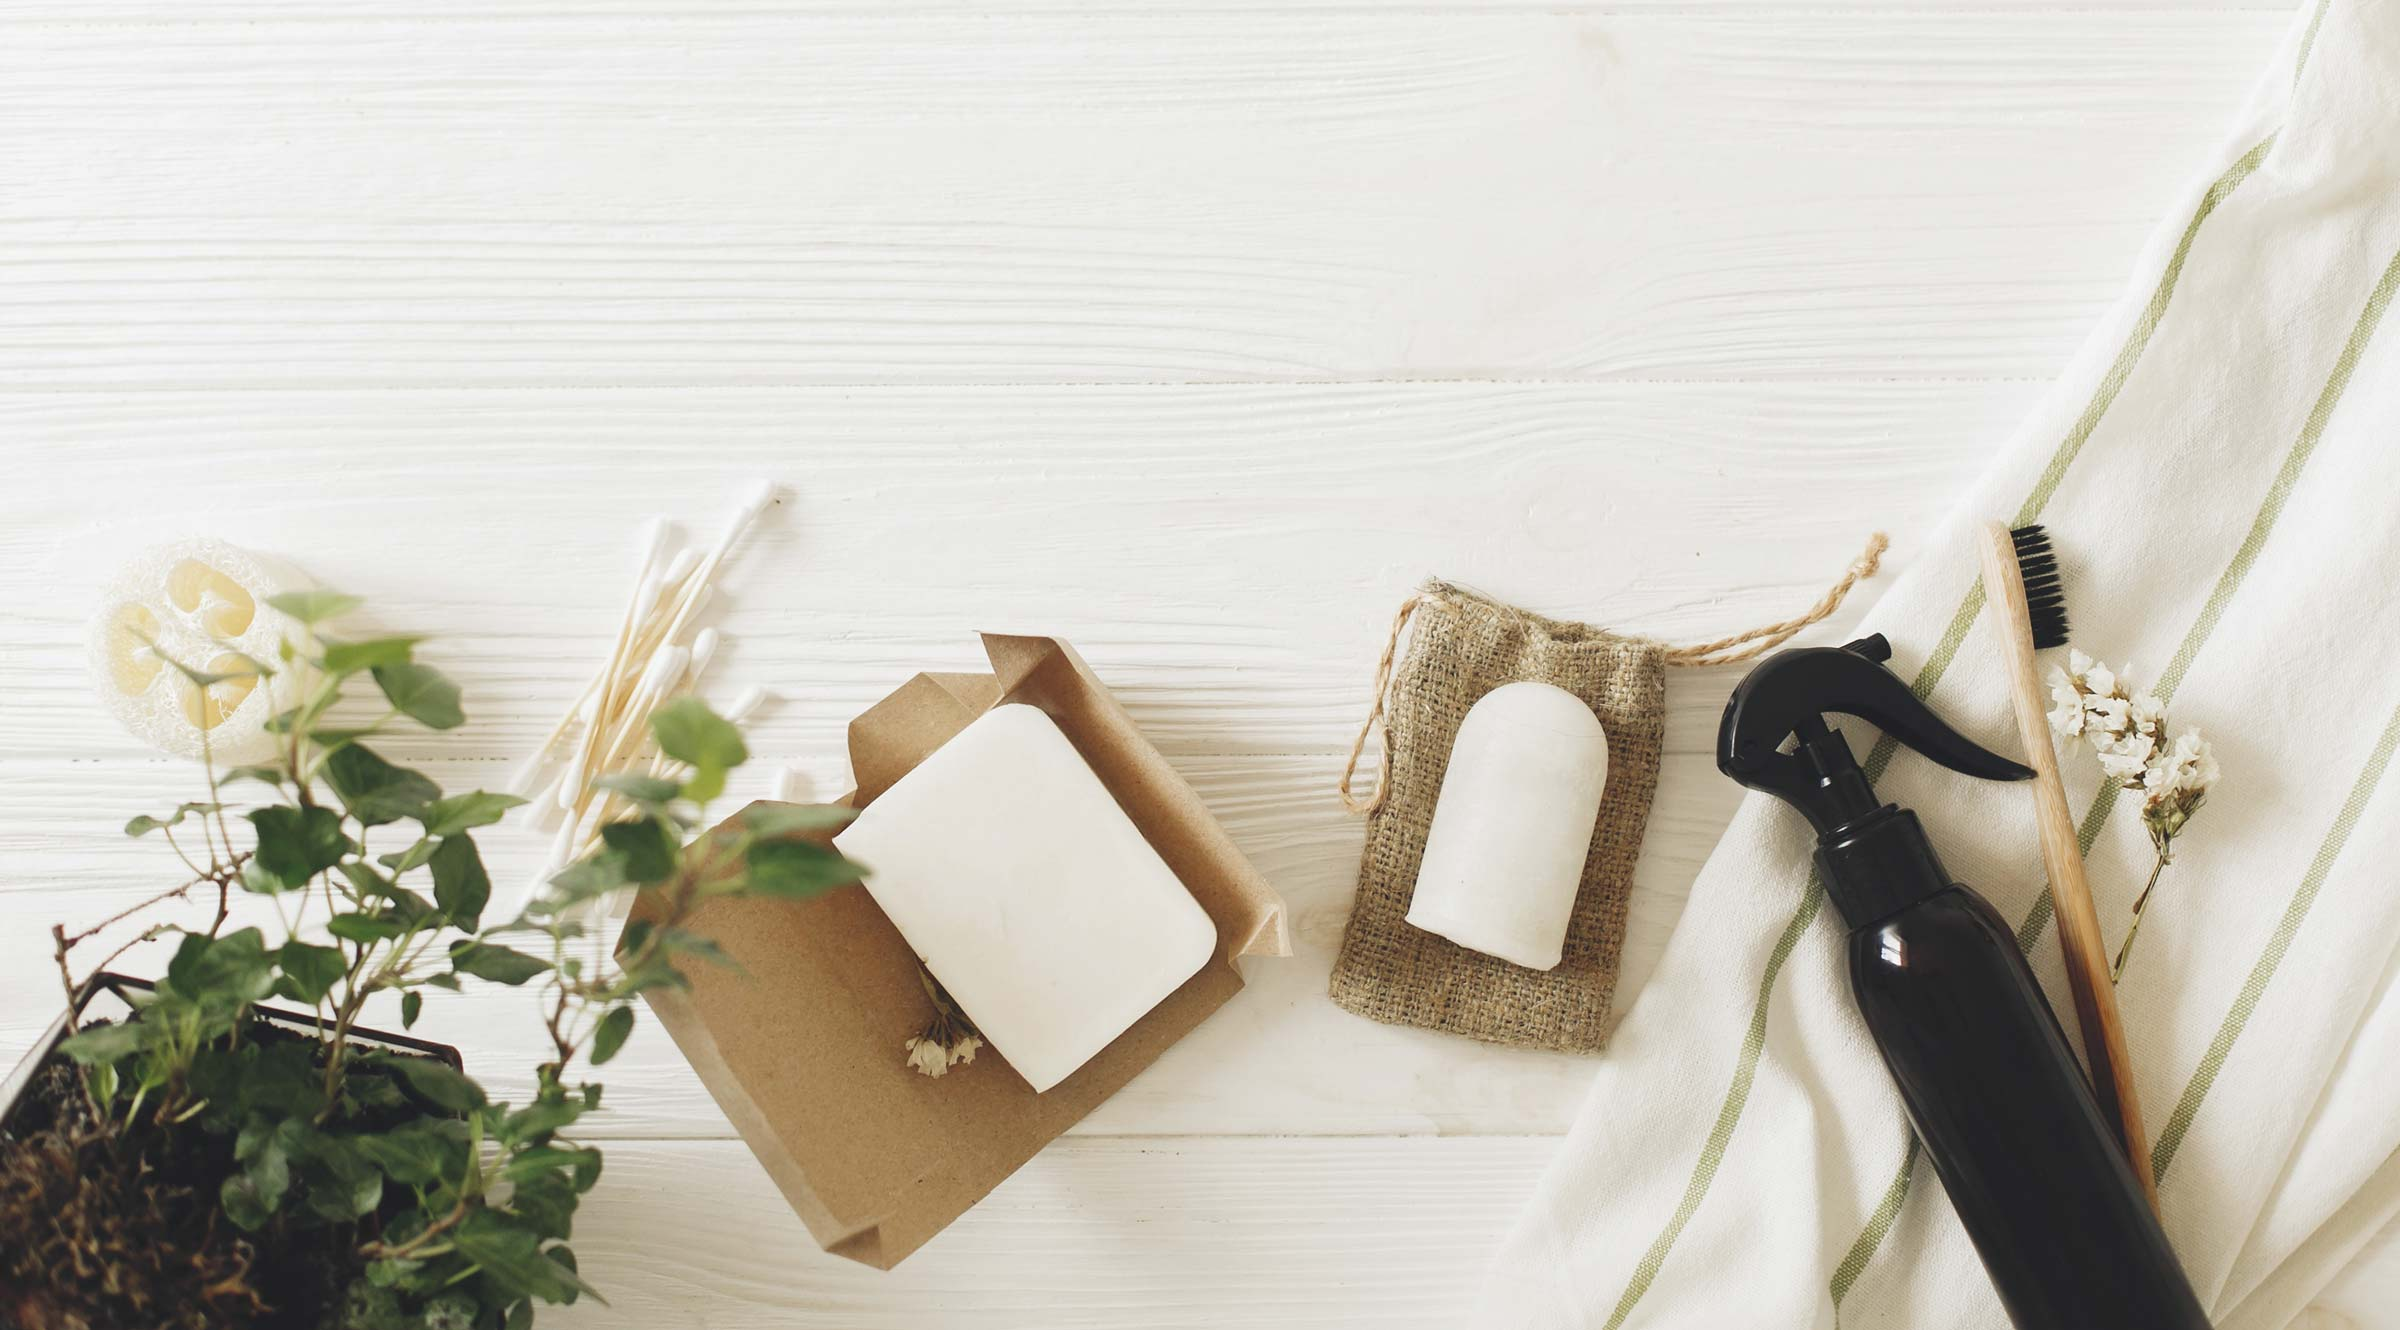 Low Impact Love - eco friendly products flat lay